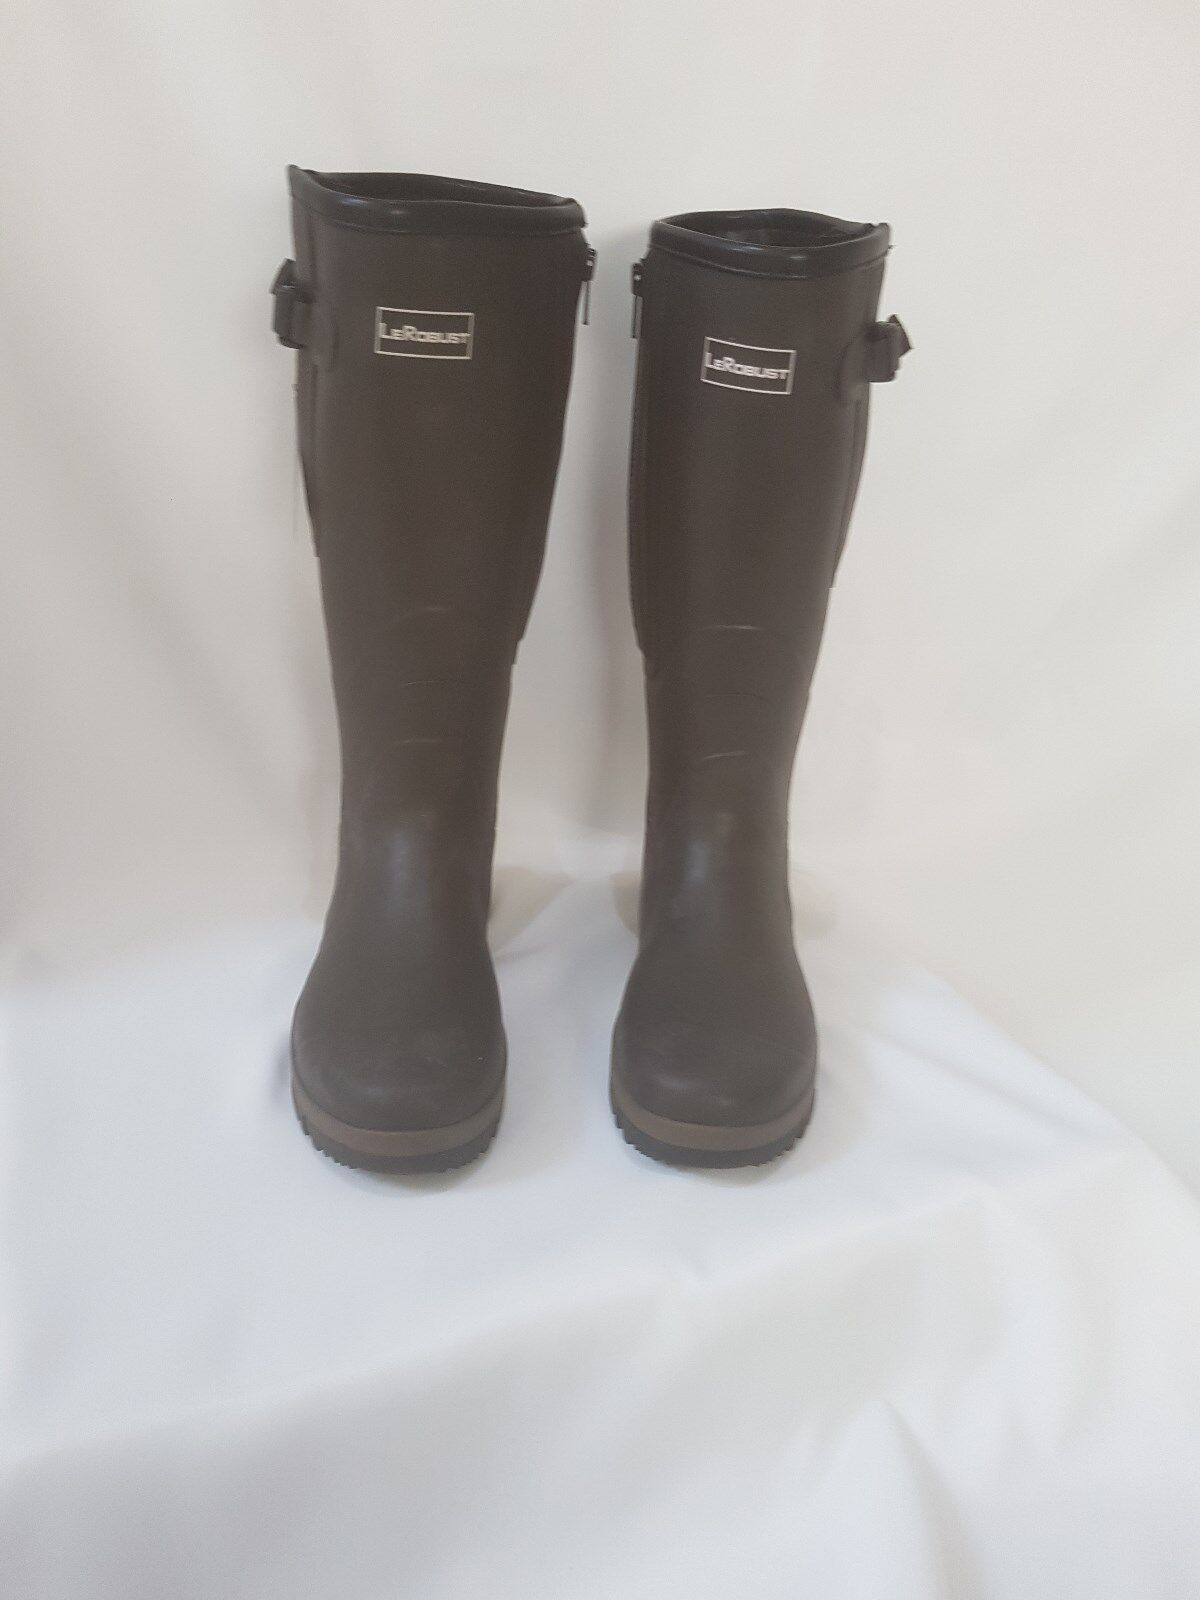 Marrón Wellies-Jersey forrado, cremallera y fuelle Ajustable – UK Talla 6.5